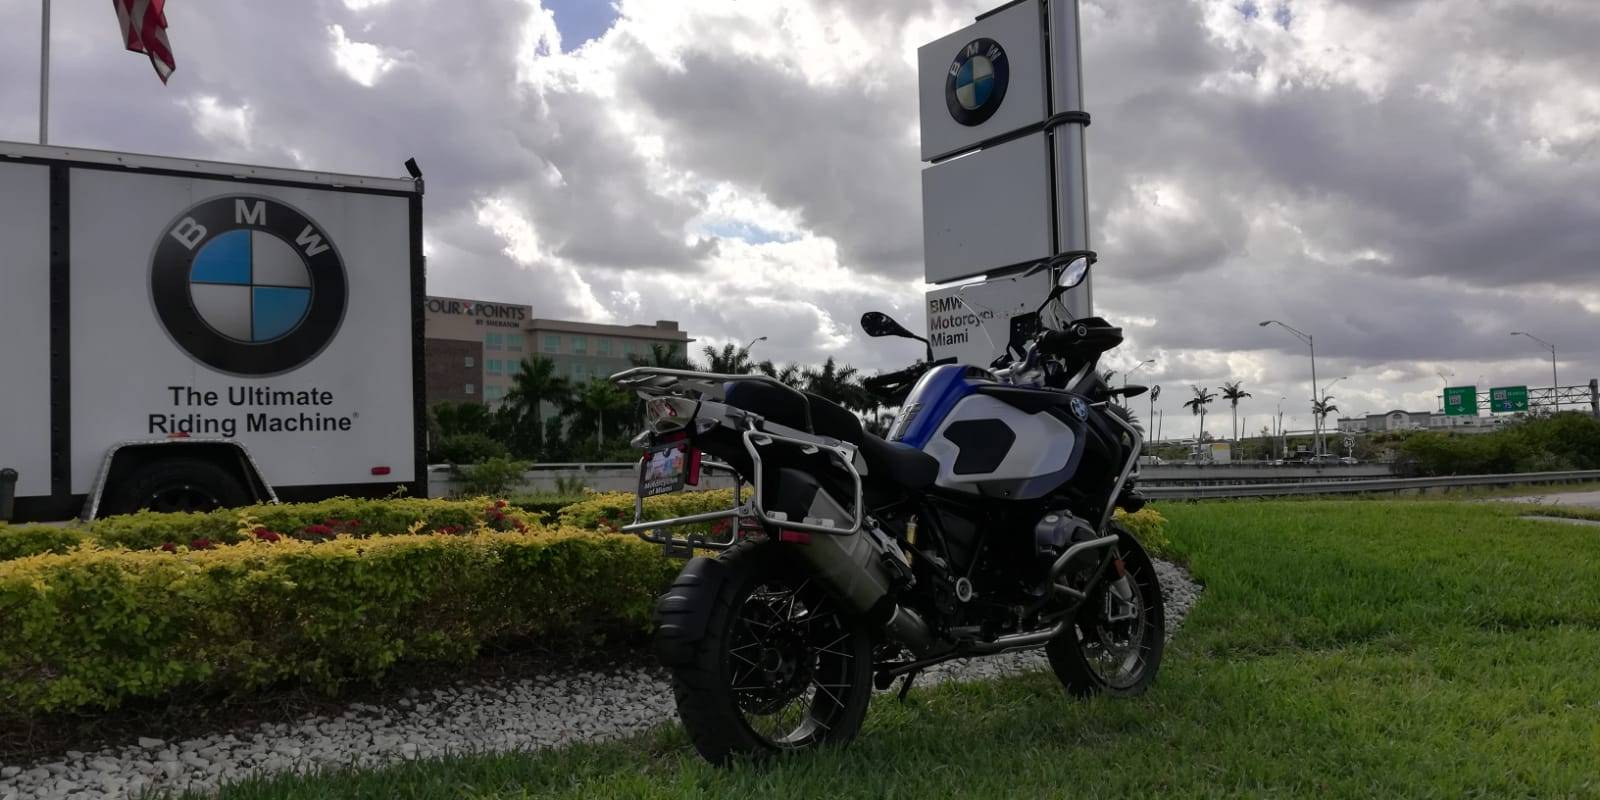 Used 2015 BMW R 1200 GSA for sale, BMW R 1200GSA for sale, BMW Motorcycle R1200GSA, used BMW Adventure, Dual, GS, BMW. BMW Motorcycles of Miami, Motorcycles of Miami, Motorcycles Miami, New Motorcycles, Used Motorcycles, pre-owned. #BMWMotorcyclesOfMiami #MotorcyclesOfMiami. - Photo 17